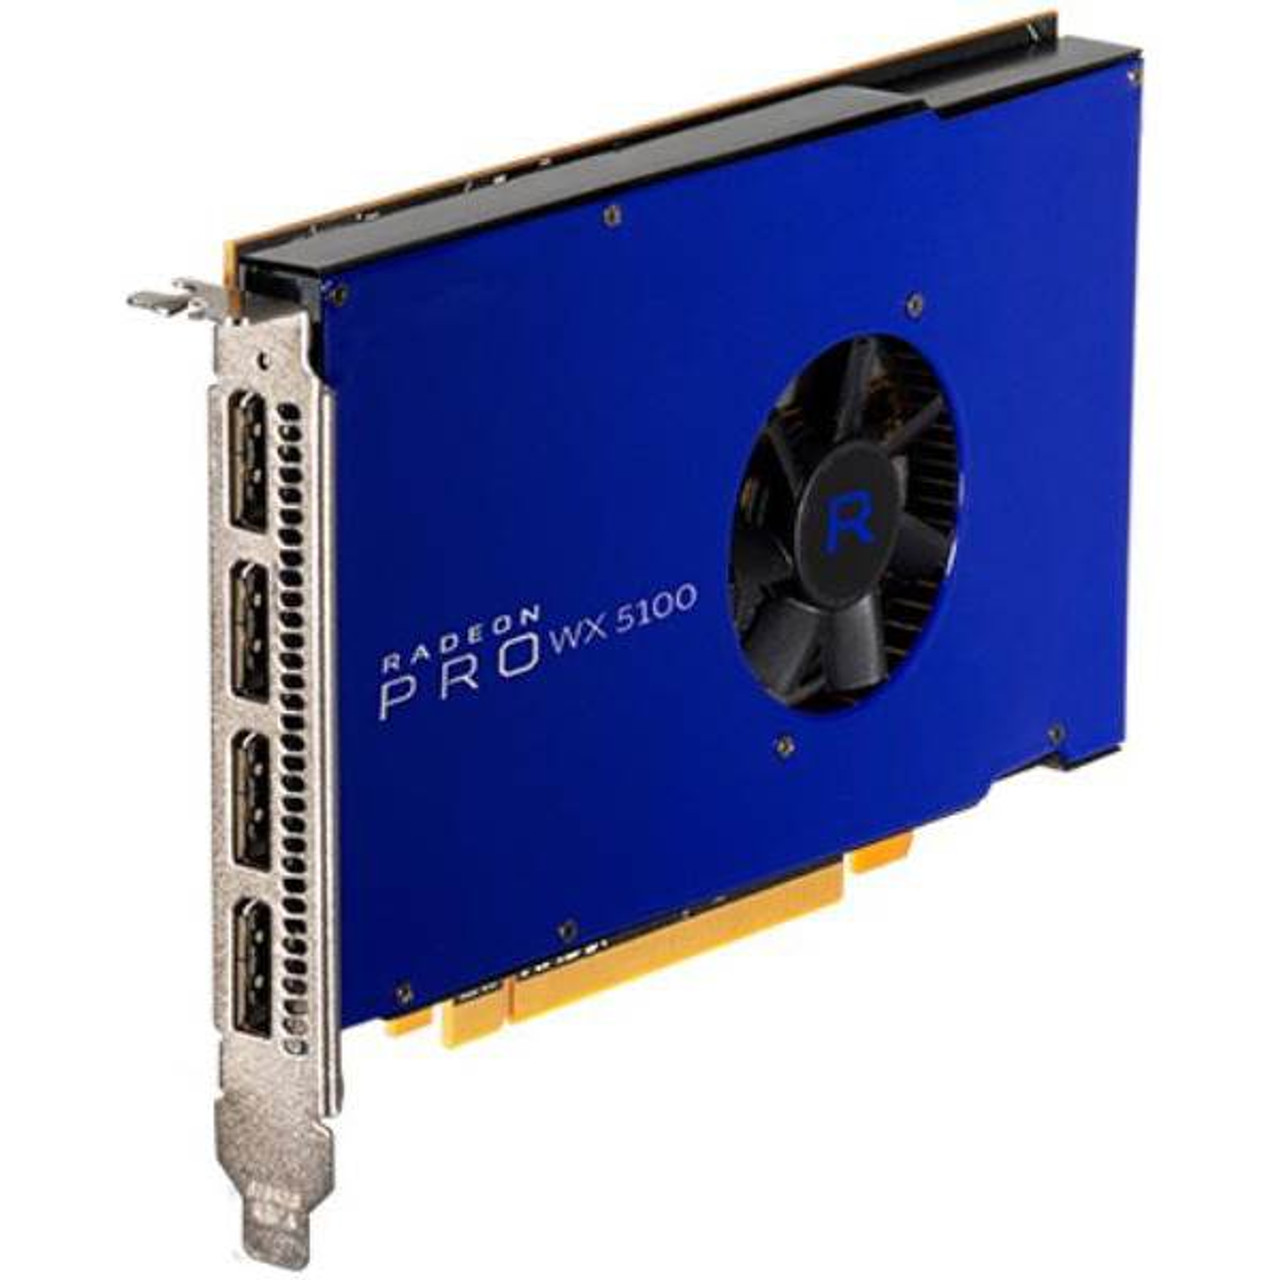 Image for AMD Radeon Pro WX 5100 8GB Workstation Video Card CX Computer Superstore